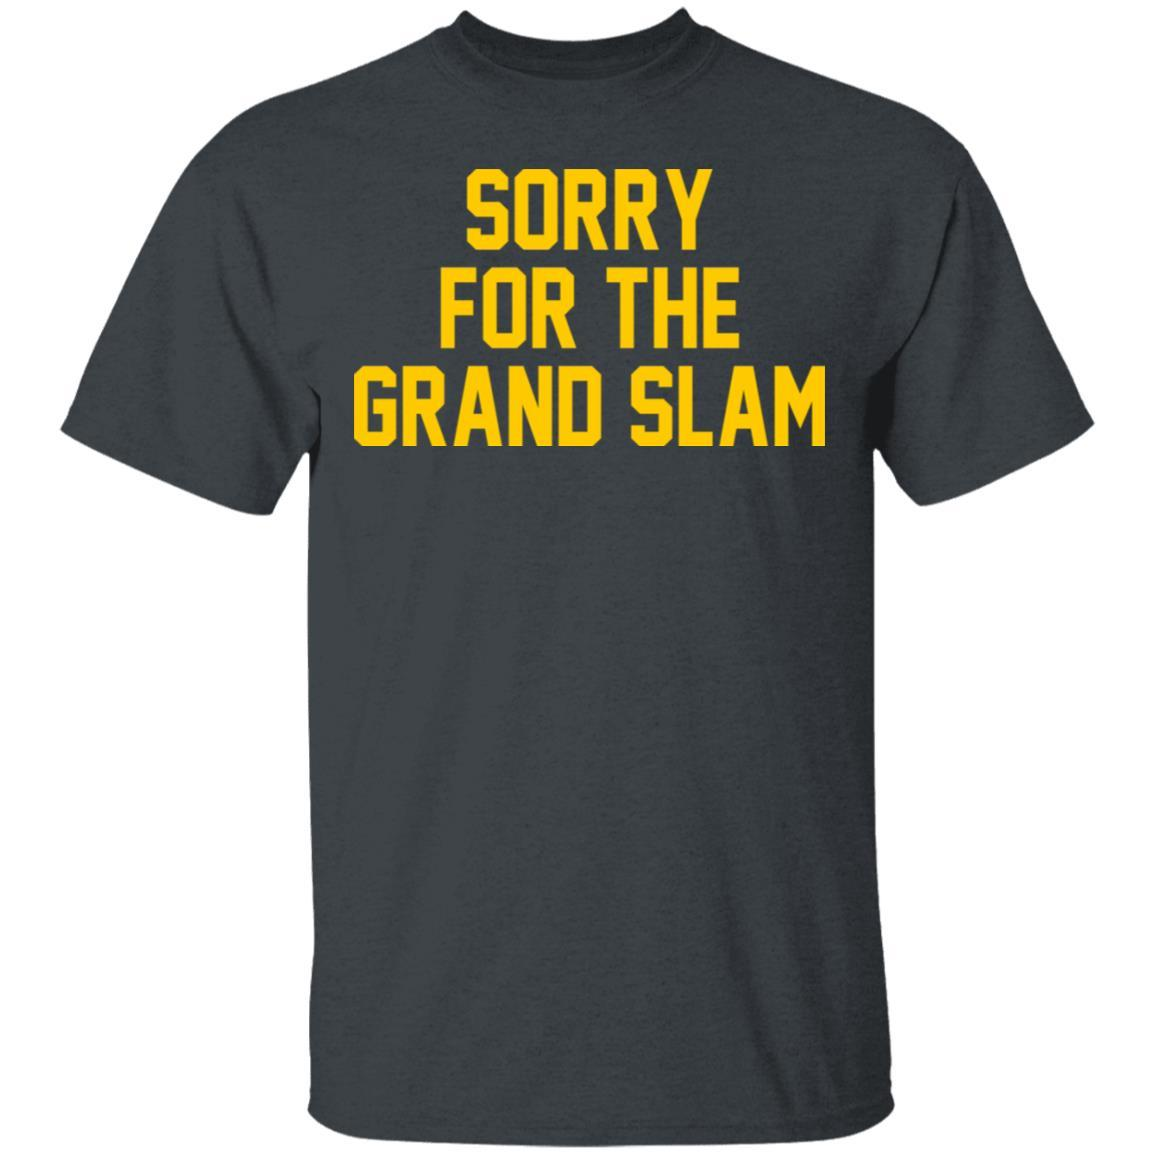 Sorry For The Grand Slam T-Shirts, Hoodies 1049-9957-88445020-48192 - Tee Ript